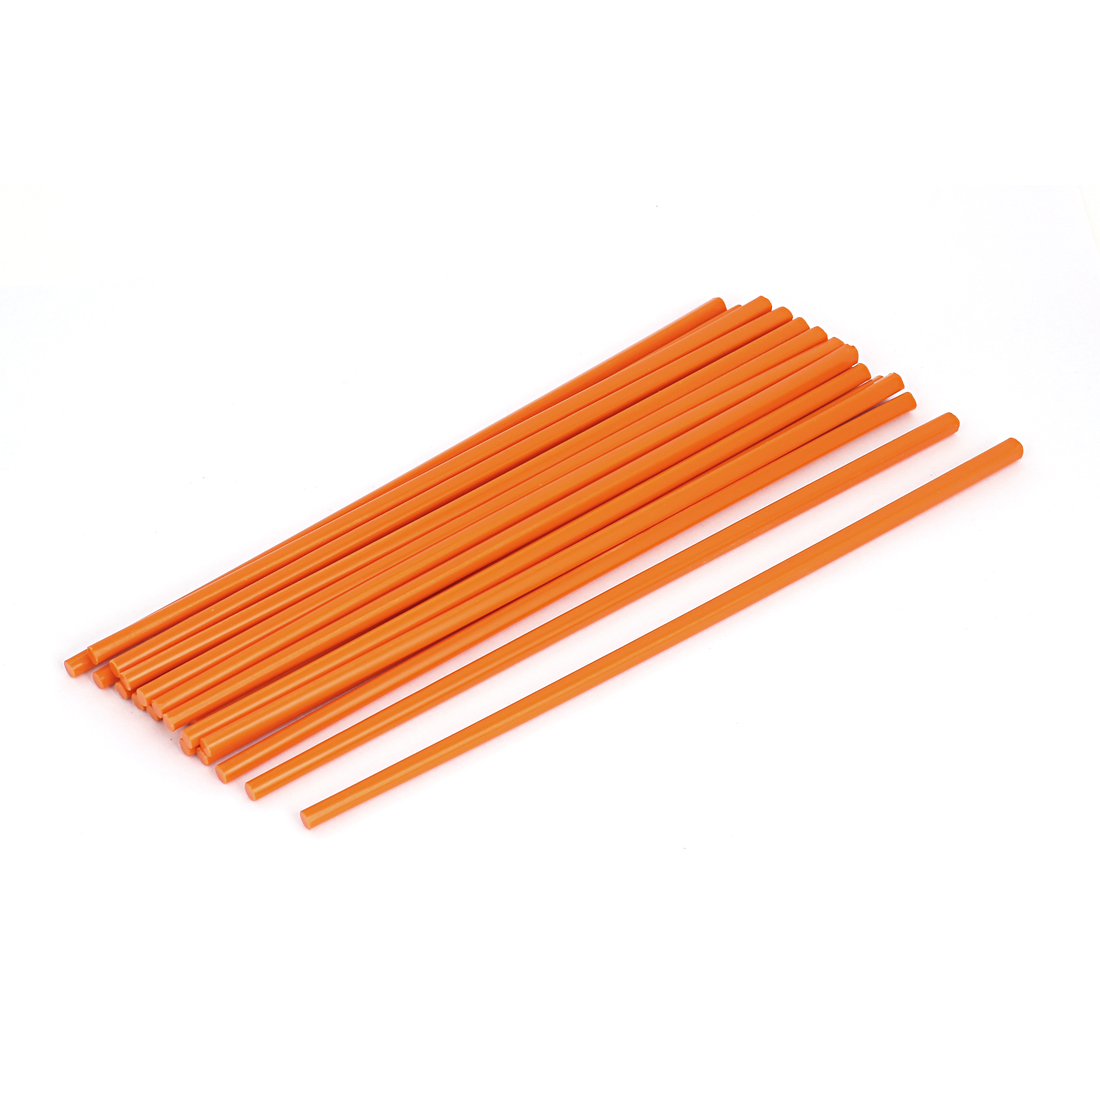 10 Pairs Chinese Traditional Home Kitchen Lunch Chopsticks Gift Orange